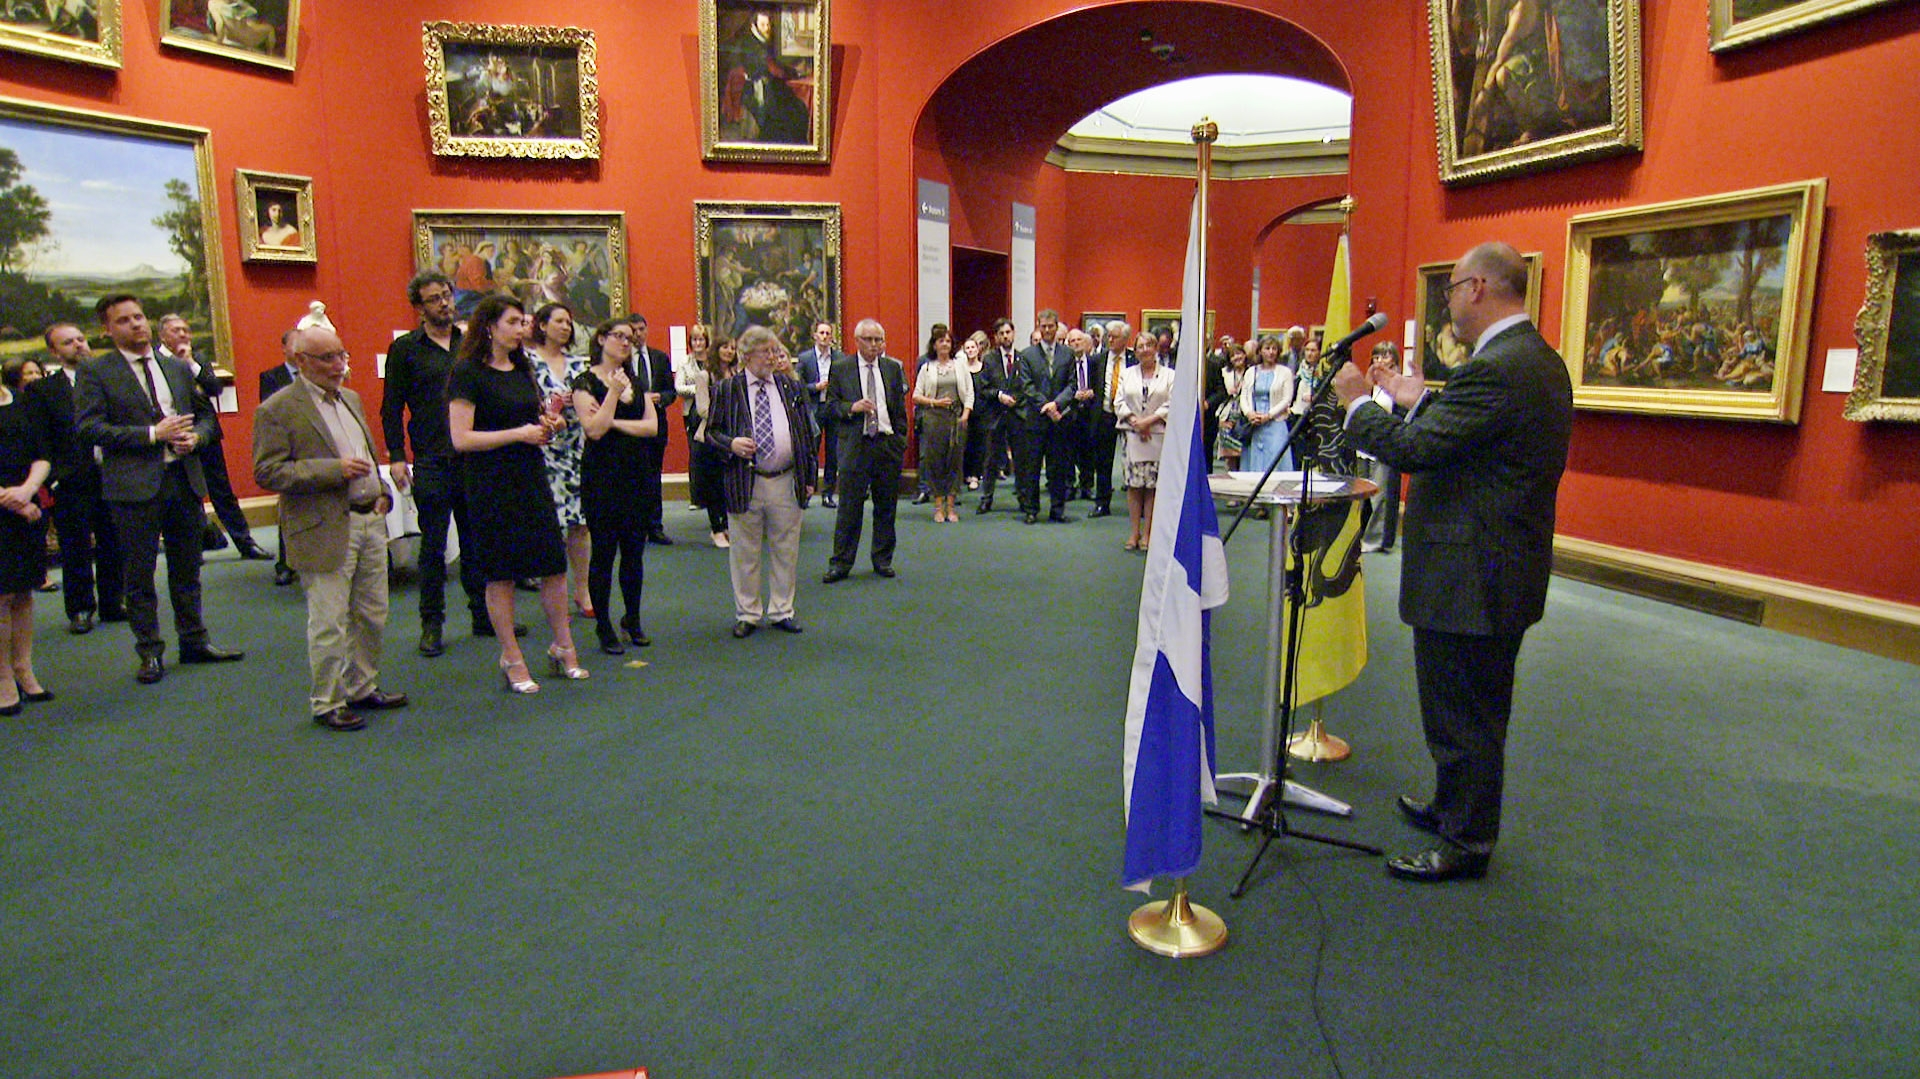 Flanders Day in Scottish National Gallery